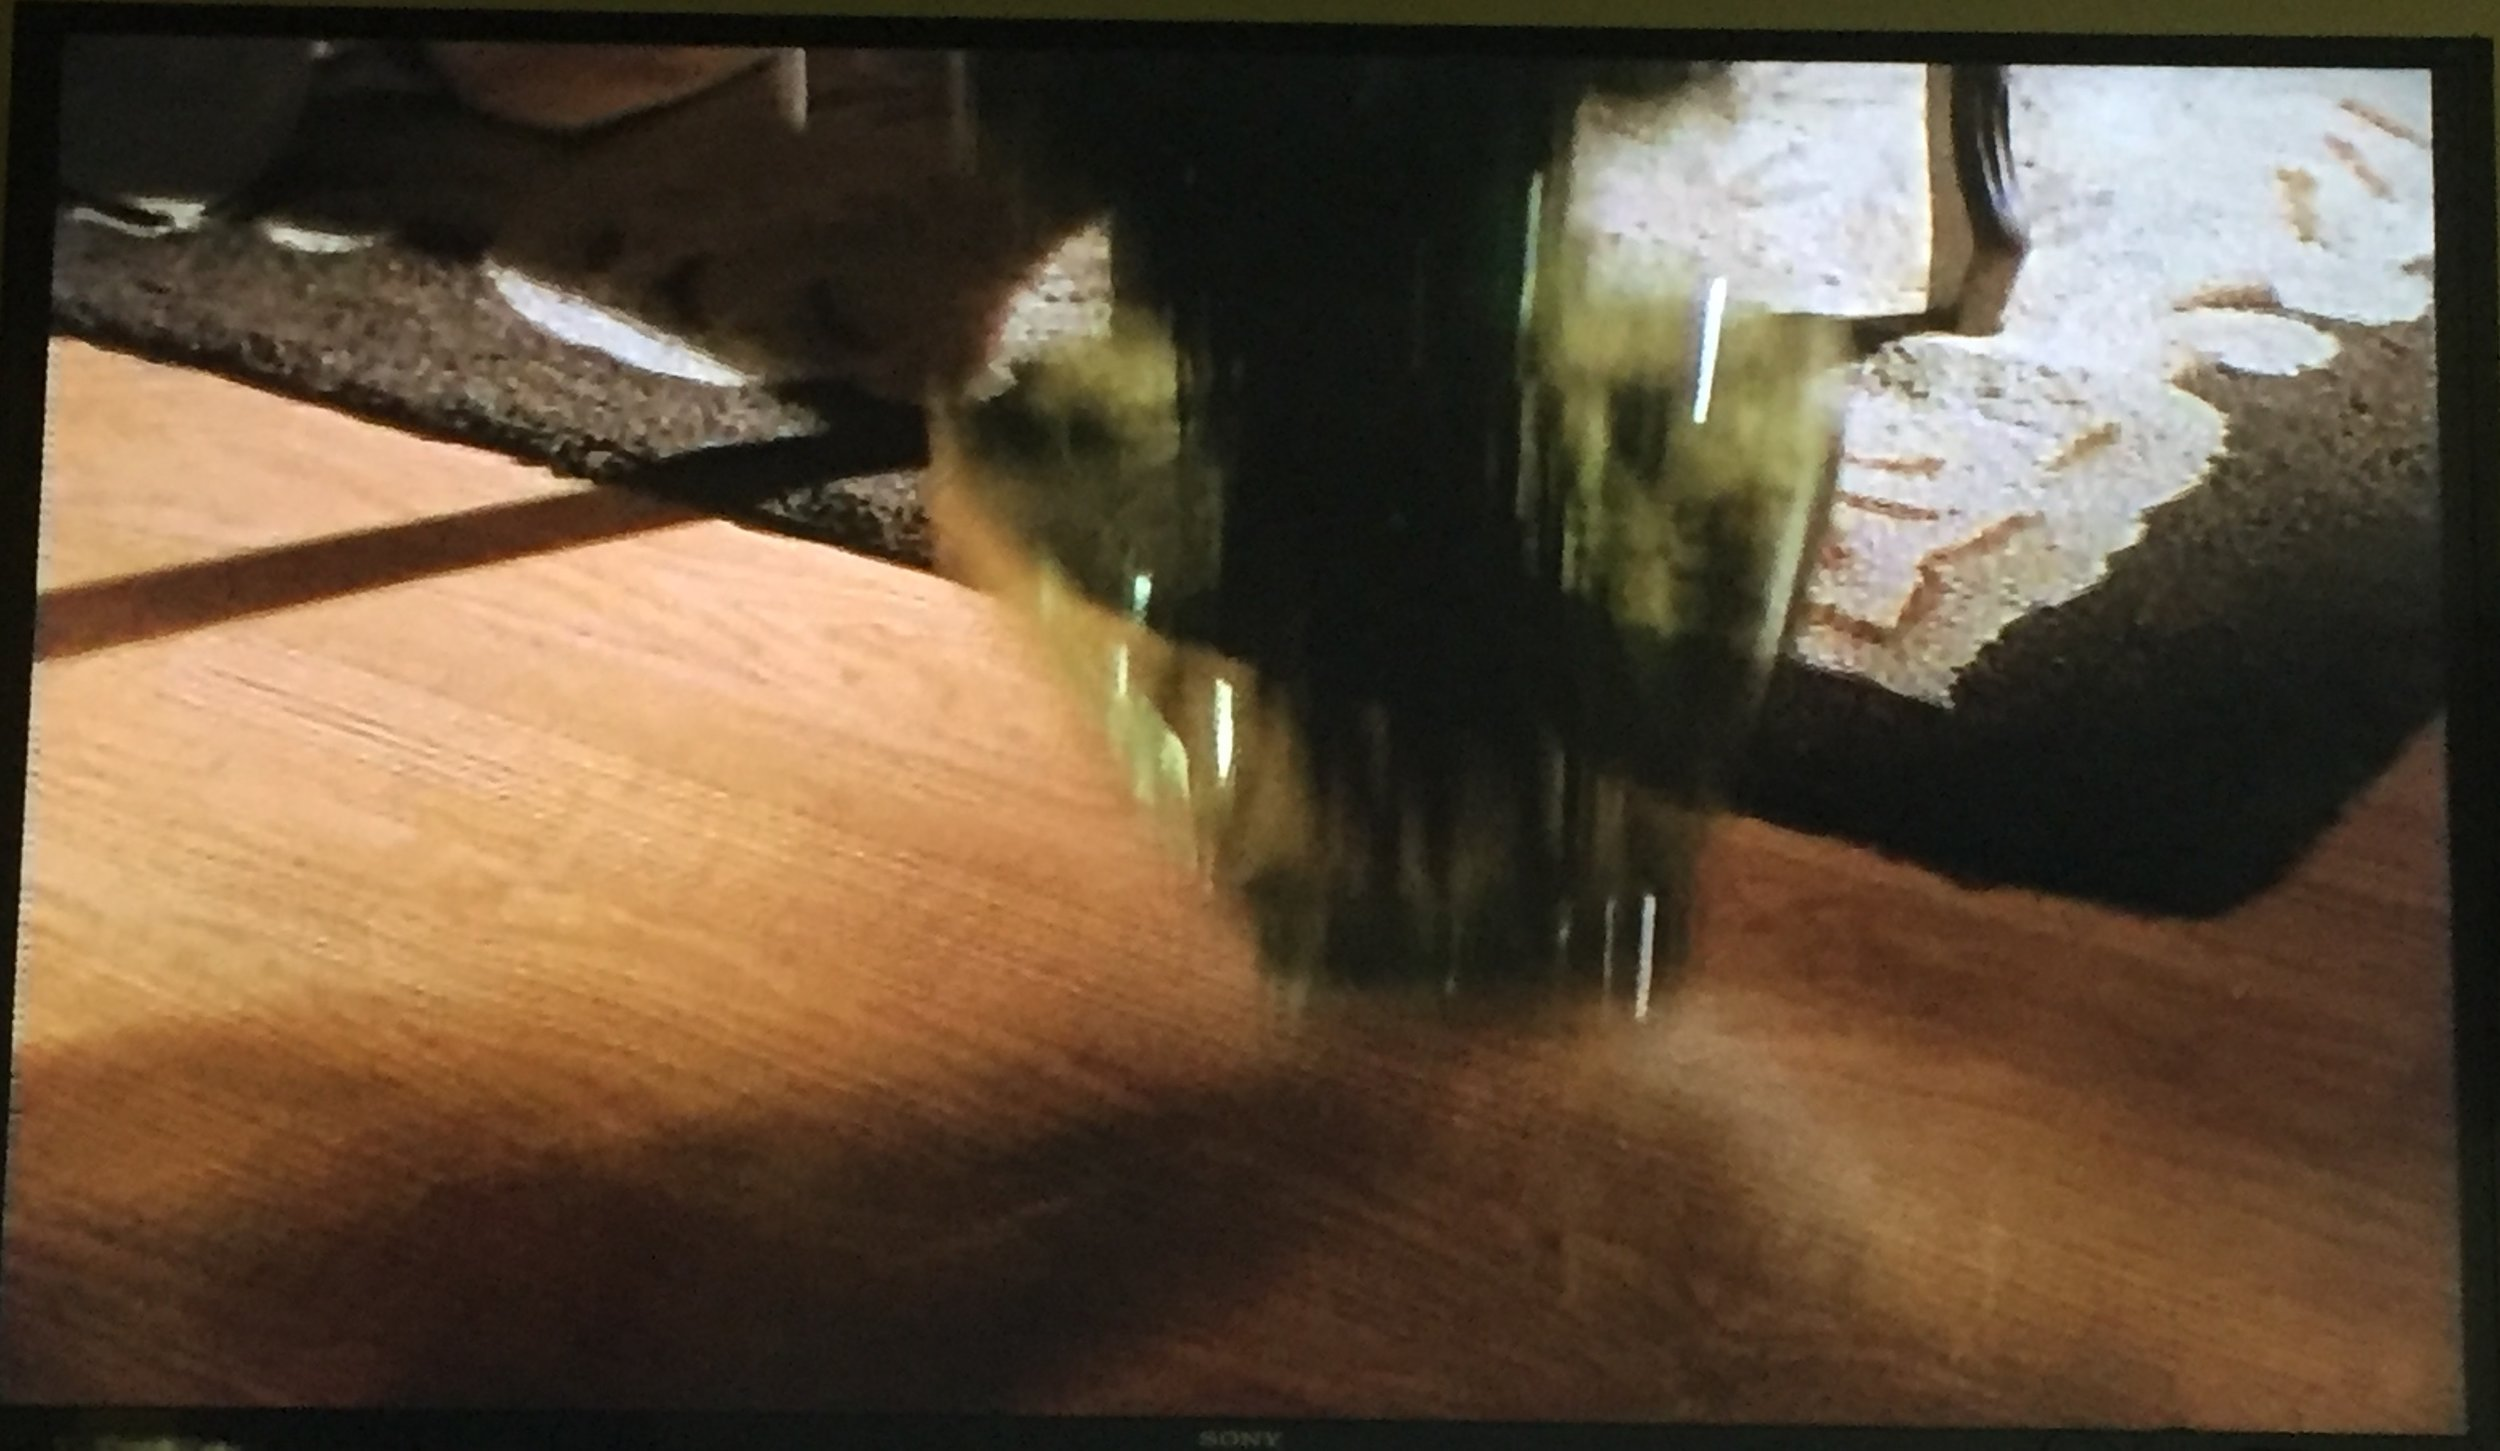 The vase as it falls.